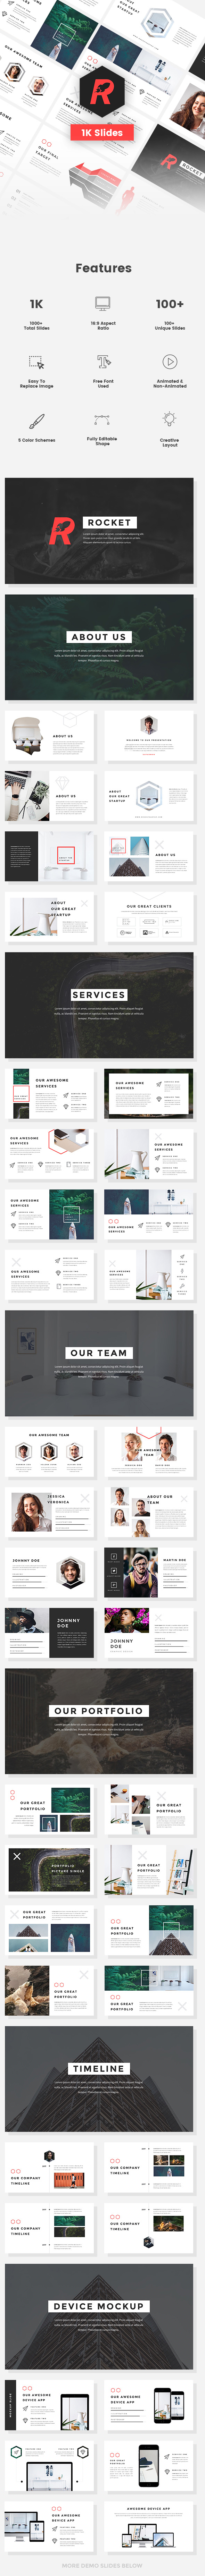 Rocket - StartUp Pitch Deck Keynote Template - Keynote Templates Presentation Templates